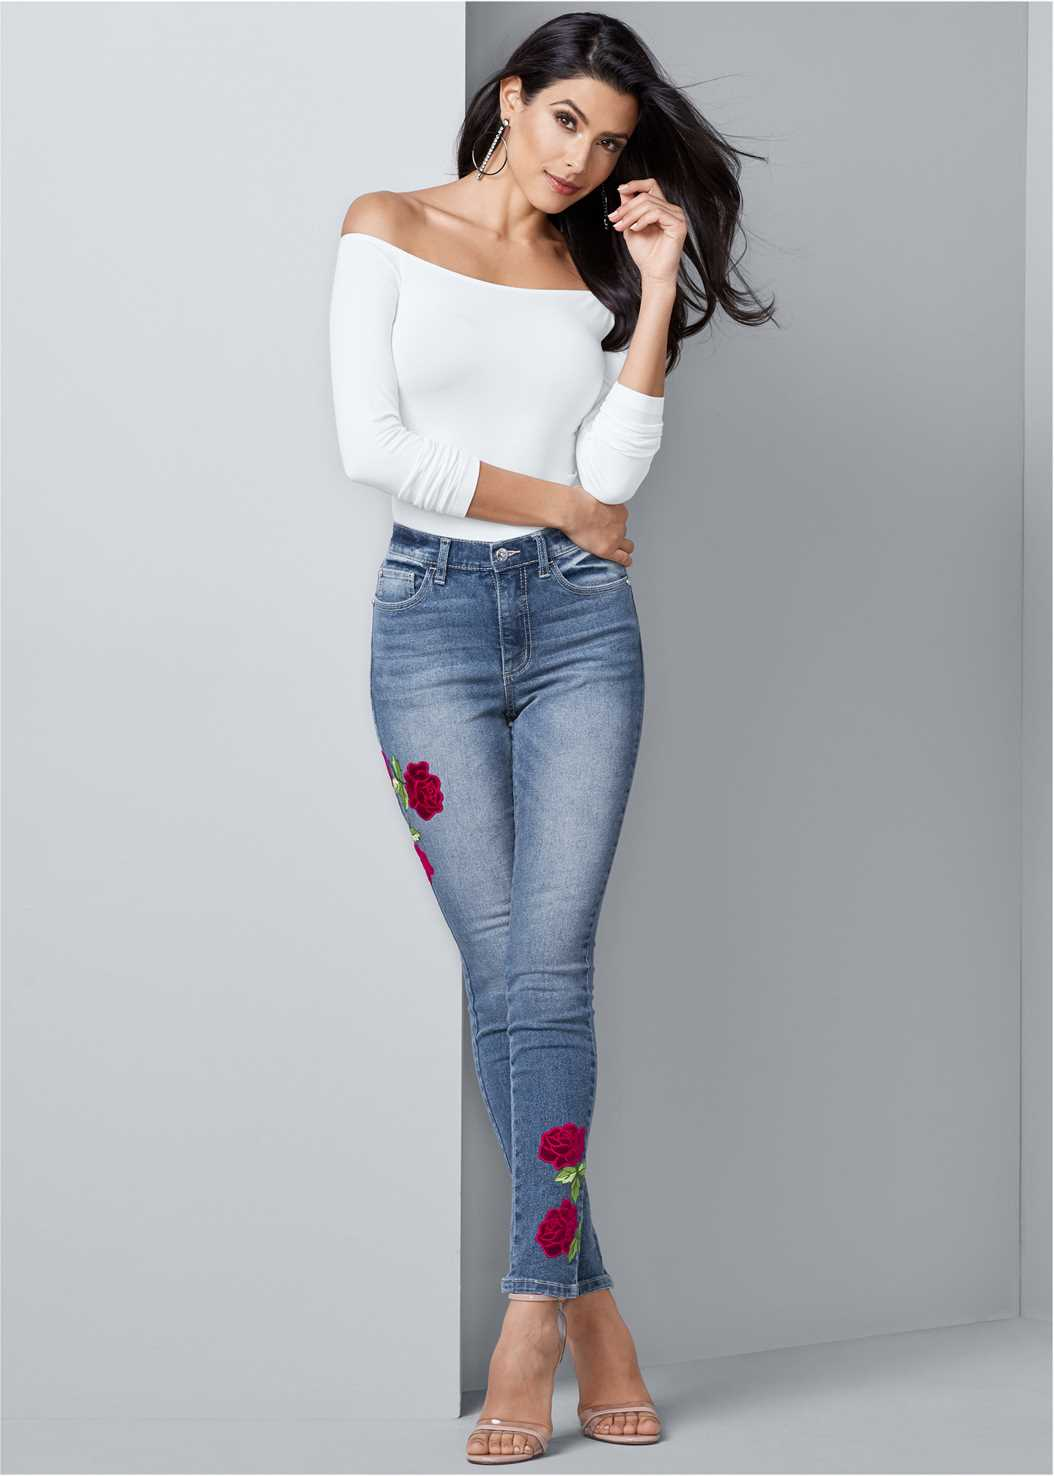 Rose Embroidered Jeans,Off The Shoulder Top,Lace Up Skinny Jeans